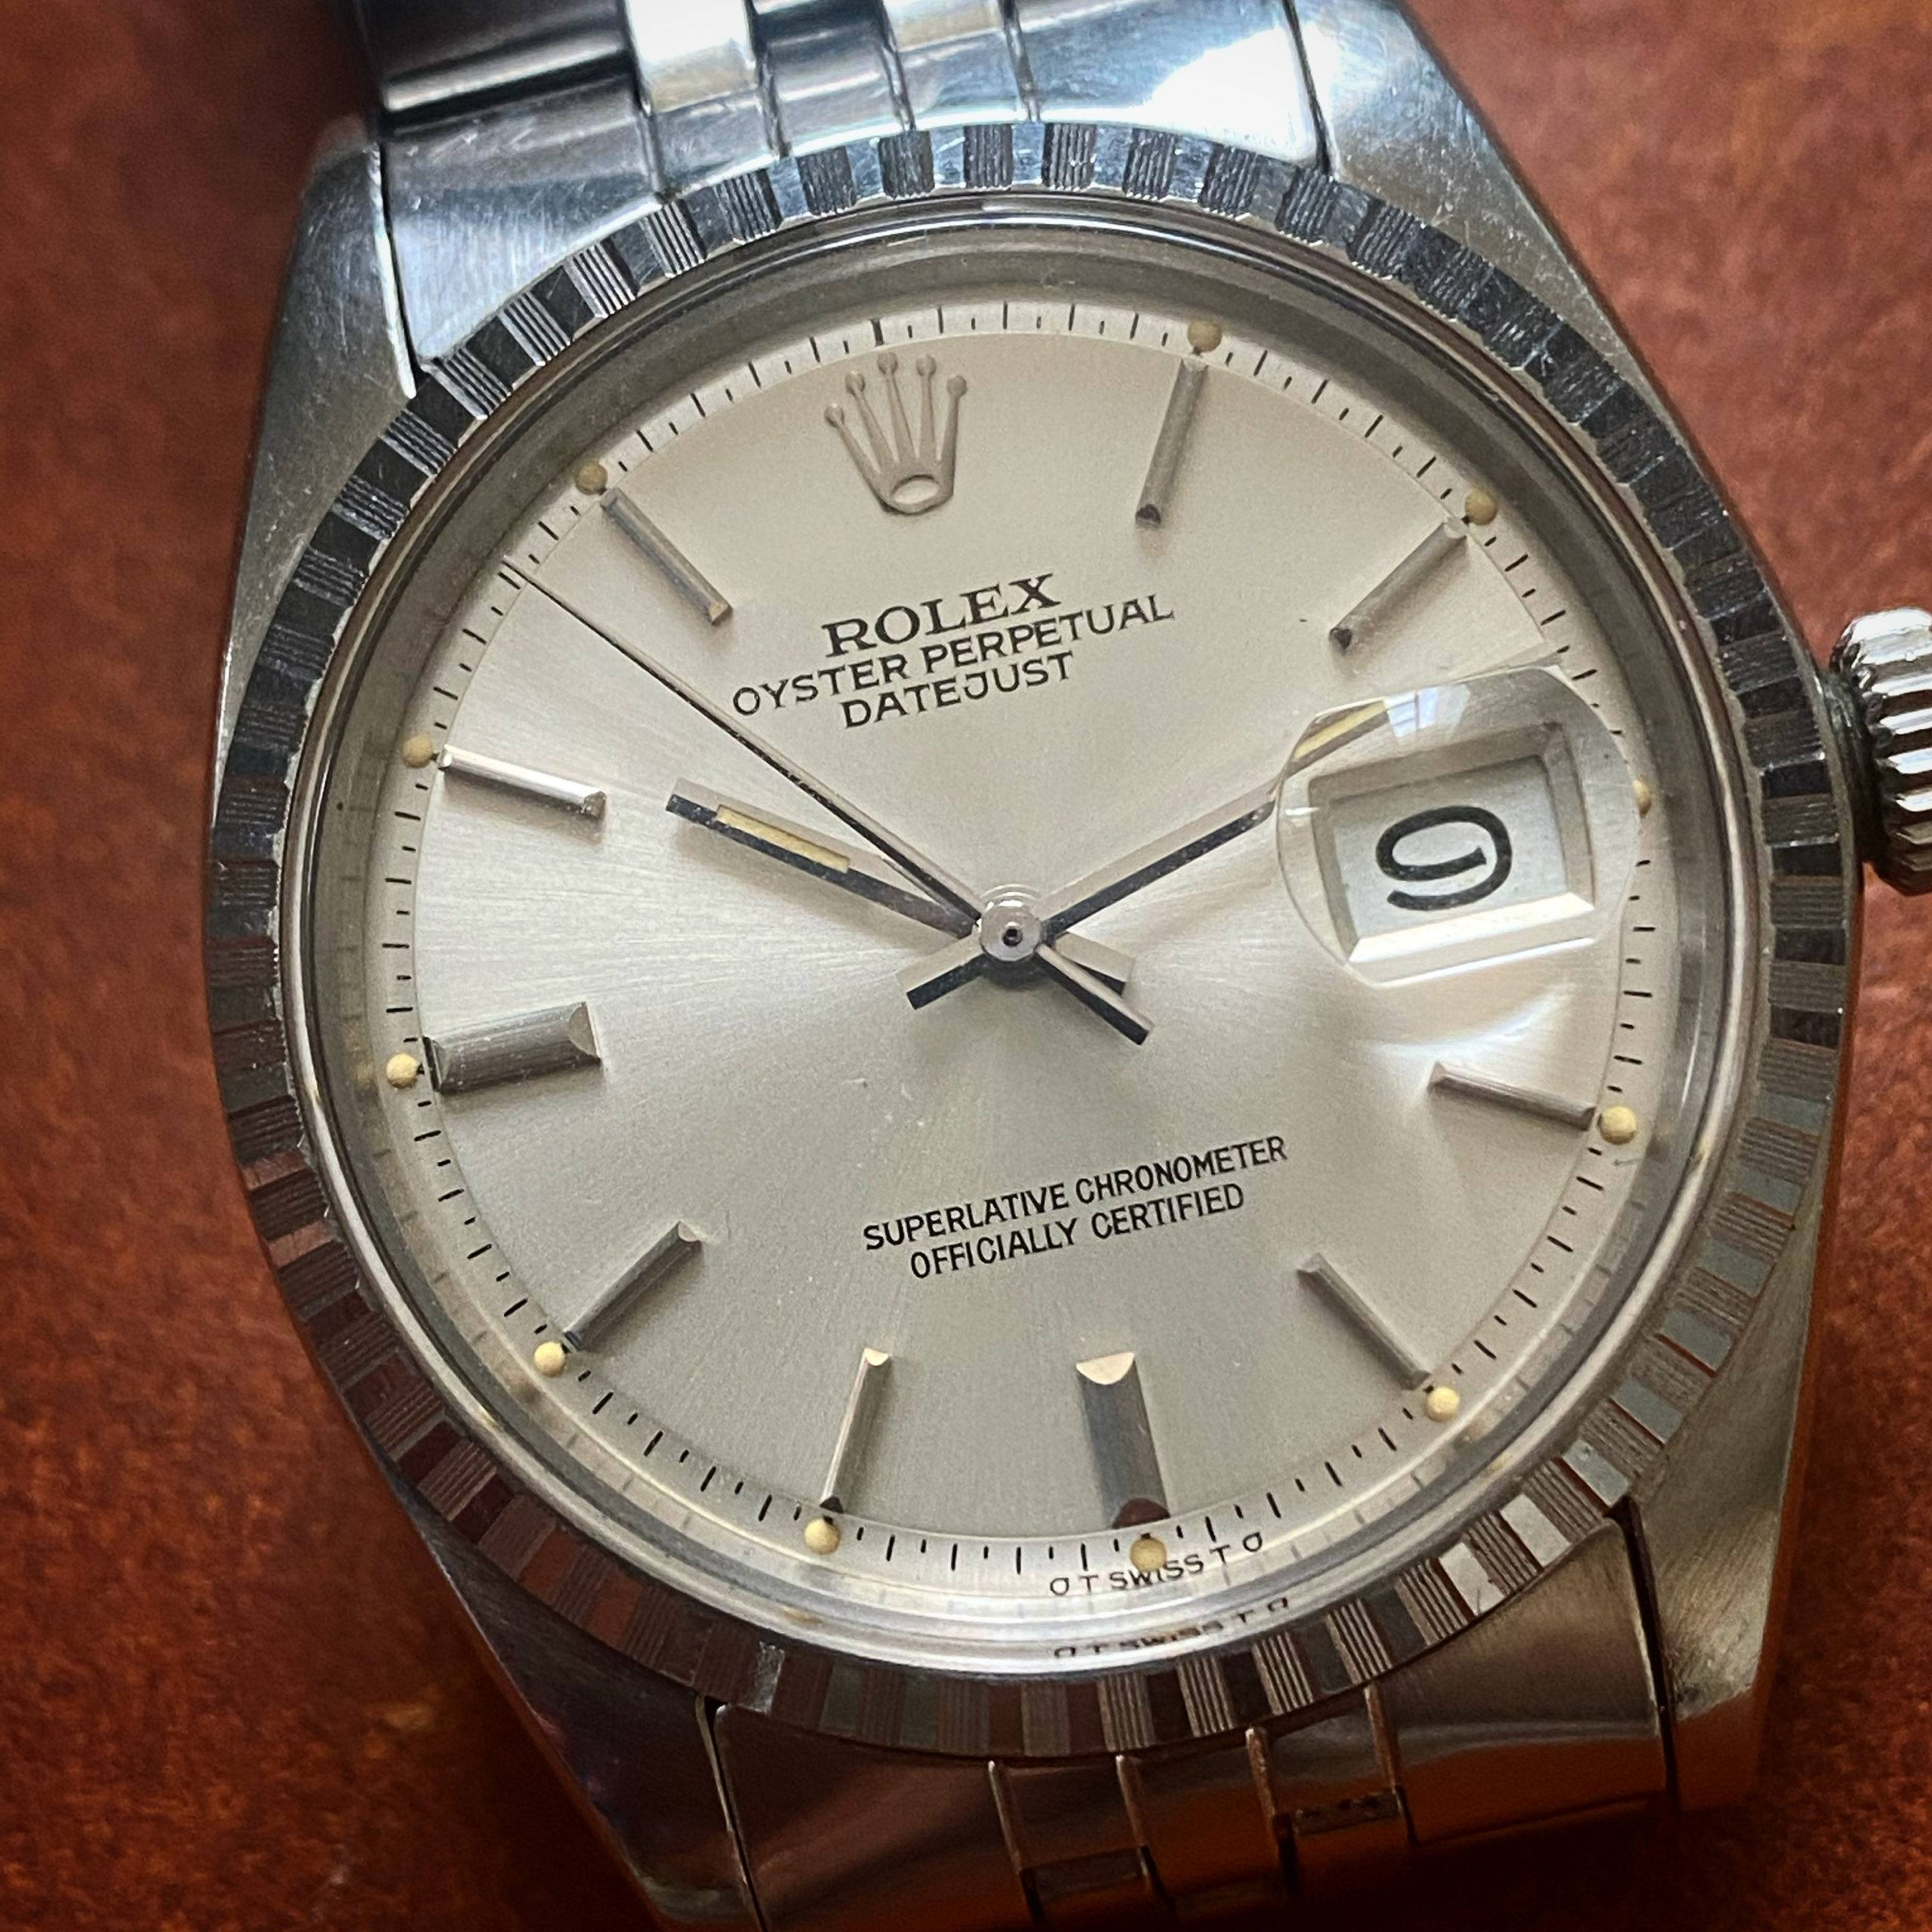 ROLEX OYSTER PERPETUAL DATEJUST SIGMA DIAL-2